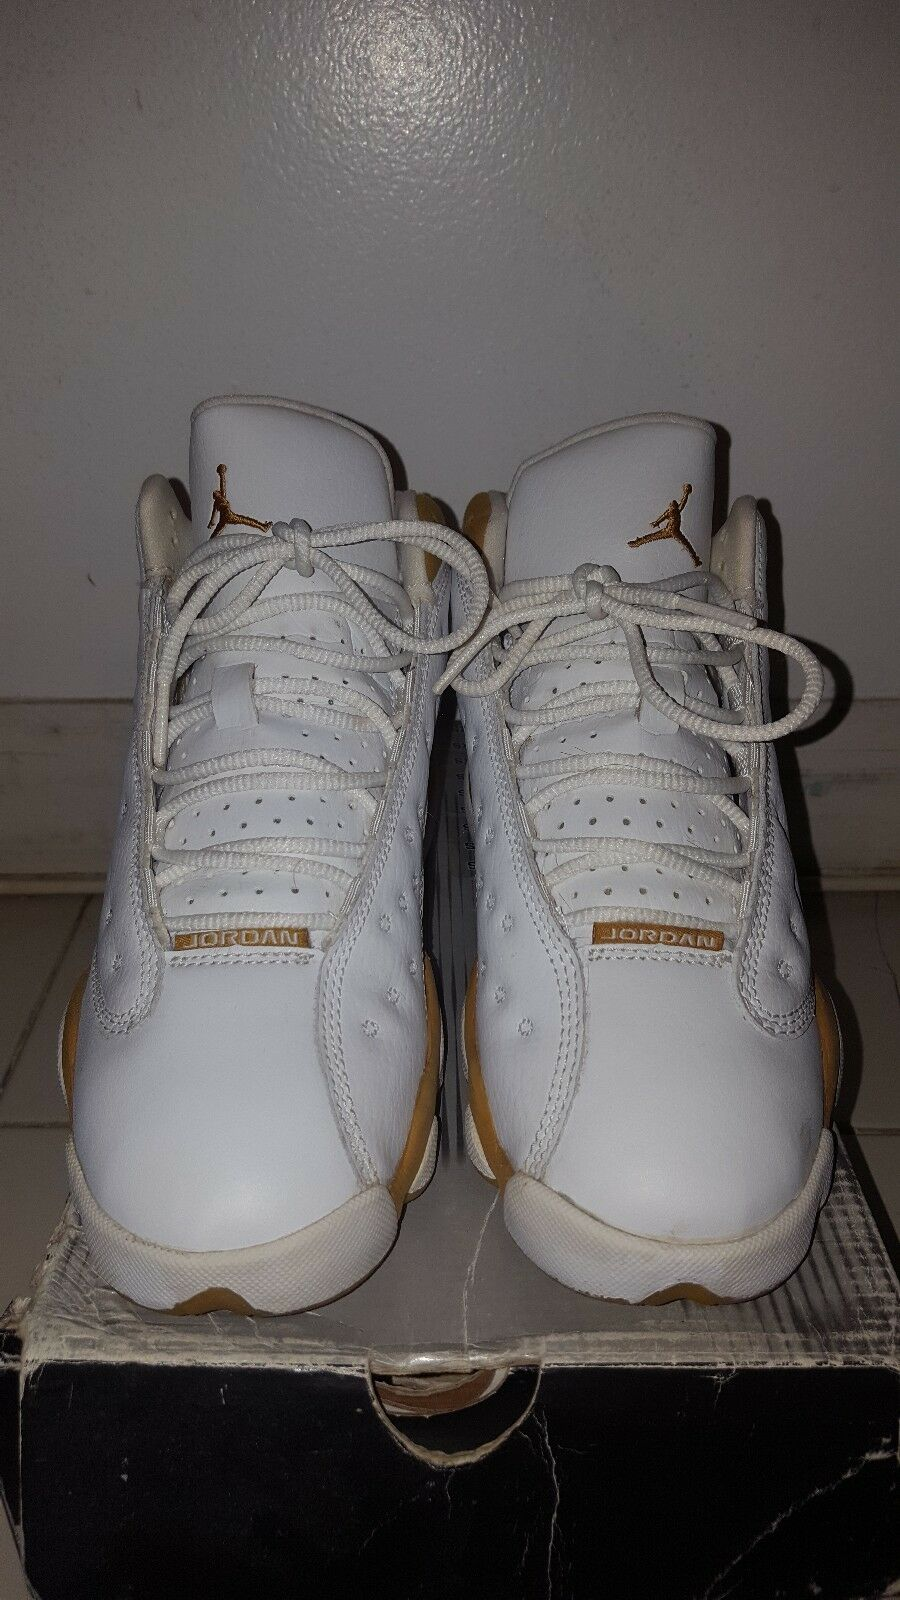 2004 Nike Air Jordan Retro 13 GS White Wheat Size 4Y (4296) 309260-171 2004